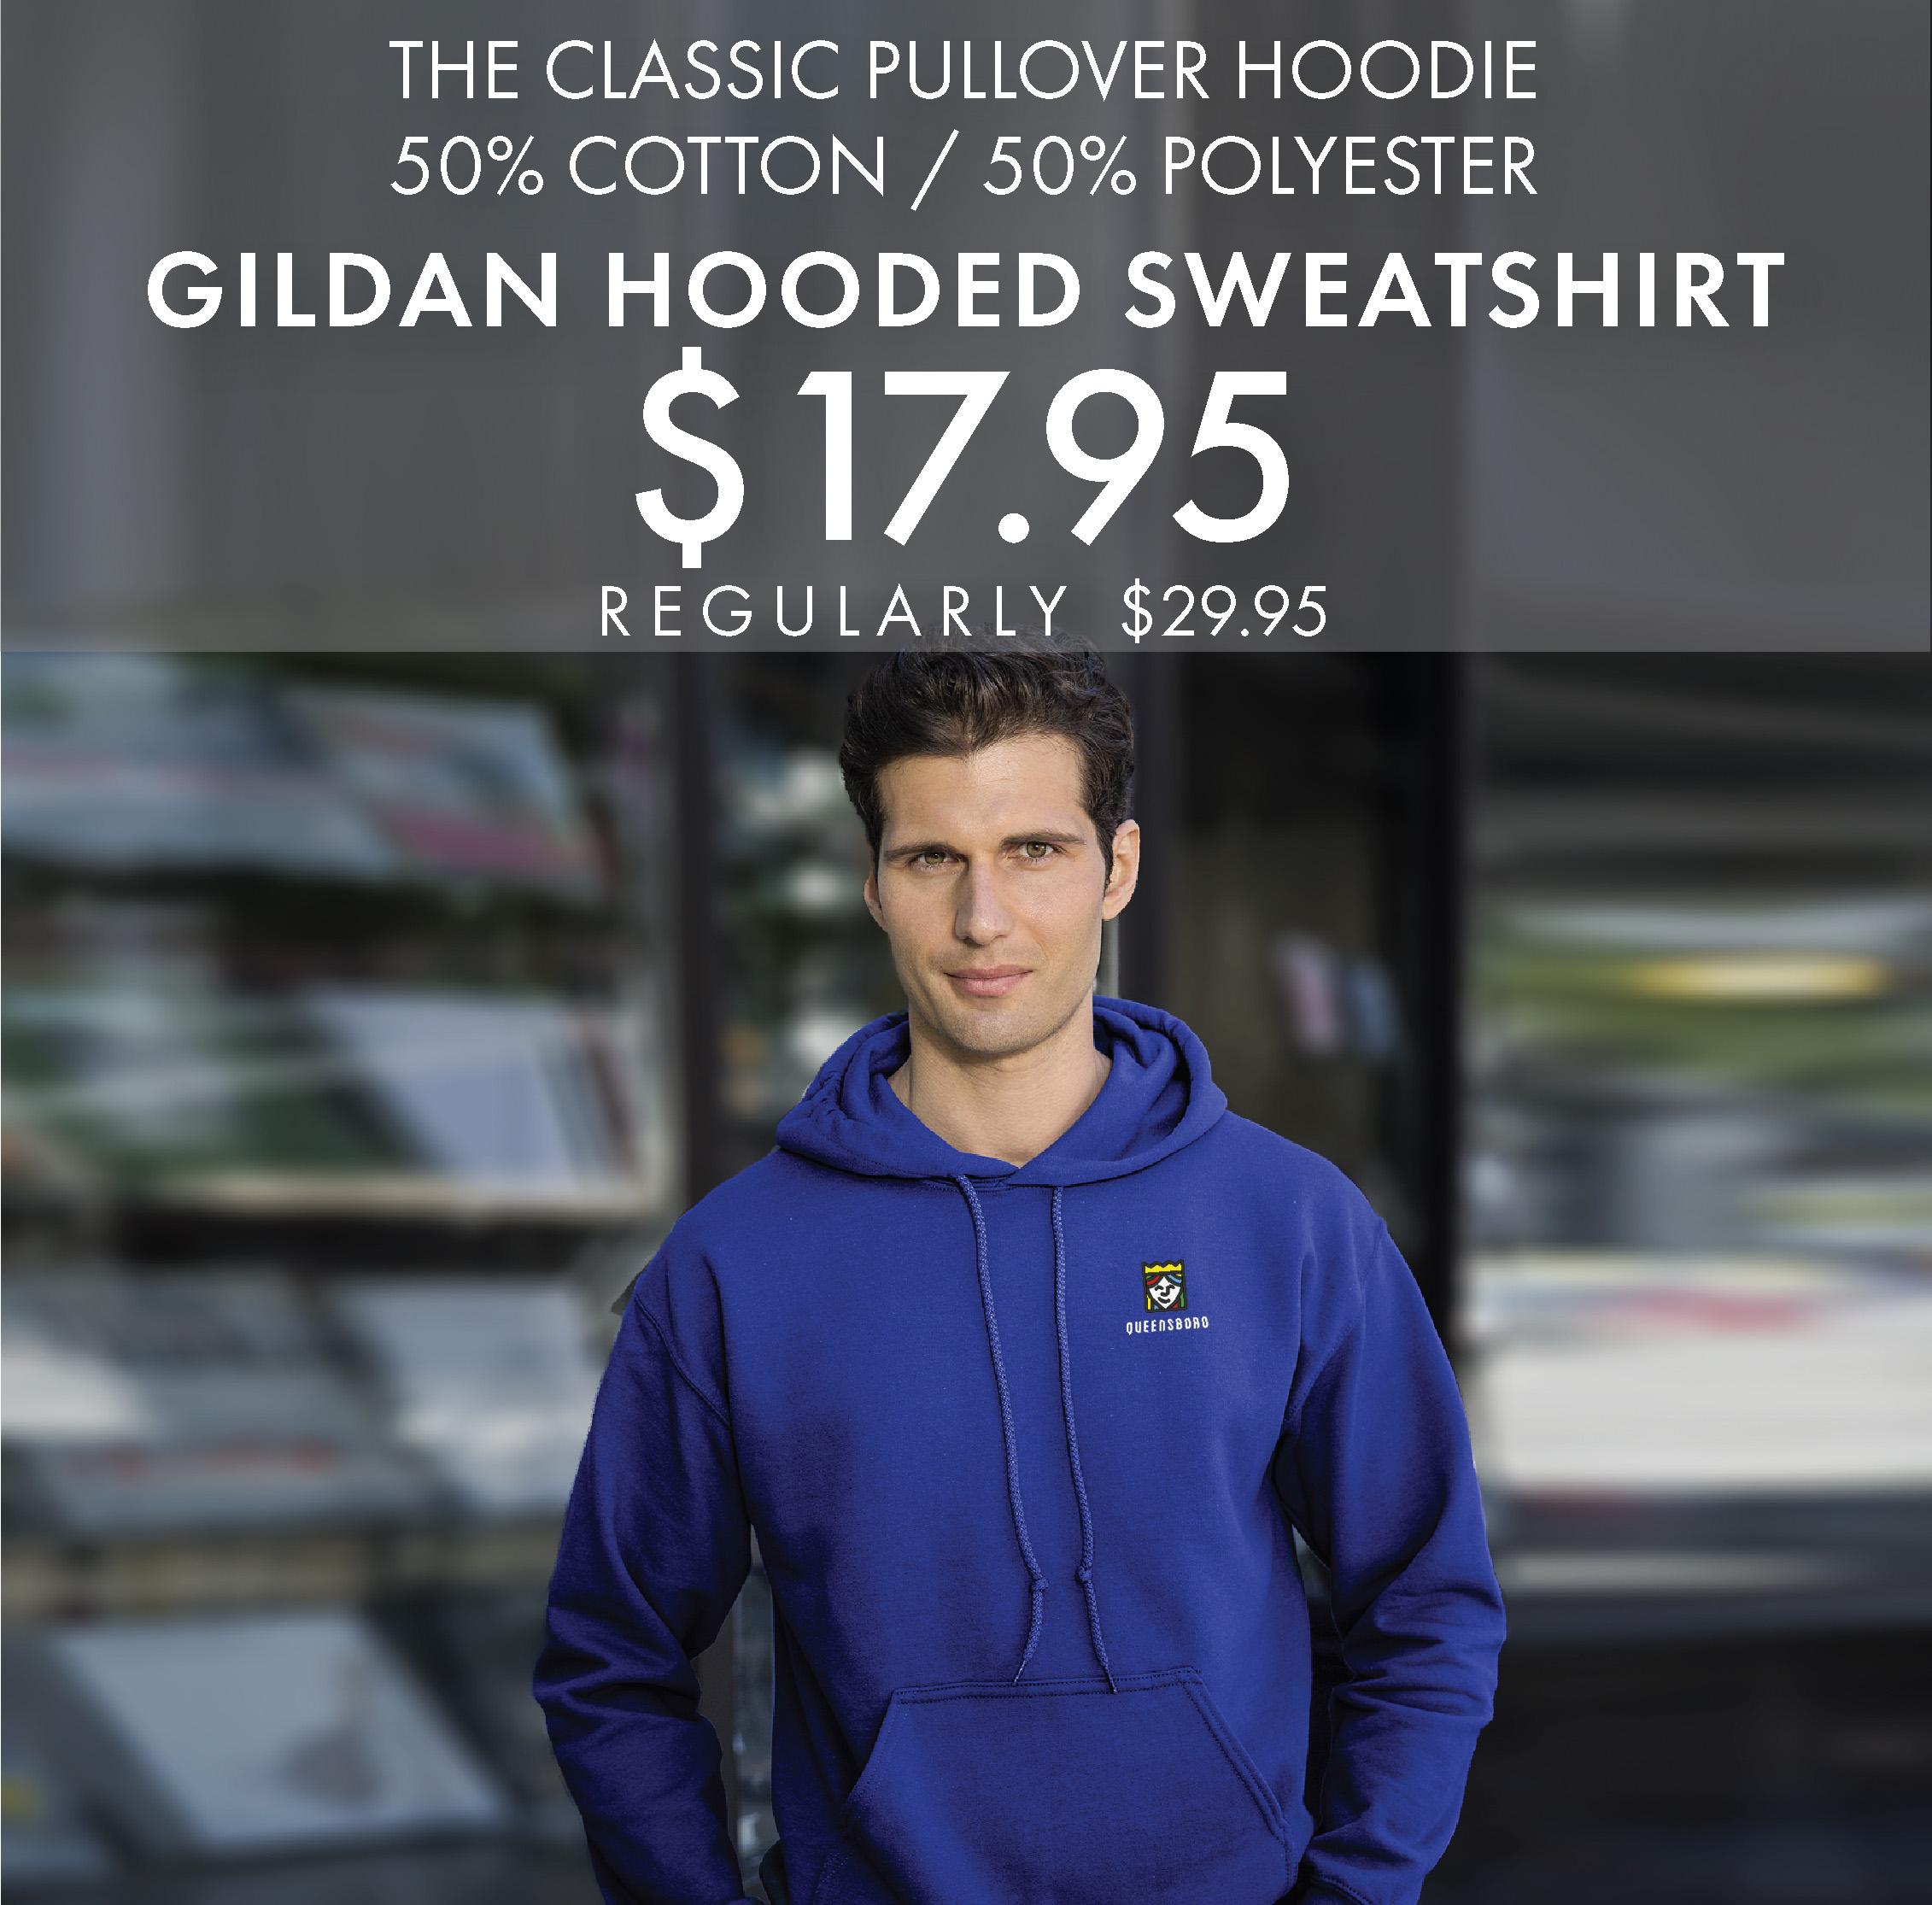 Custom Embroidered Gildan Hooded Sweatshirts